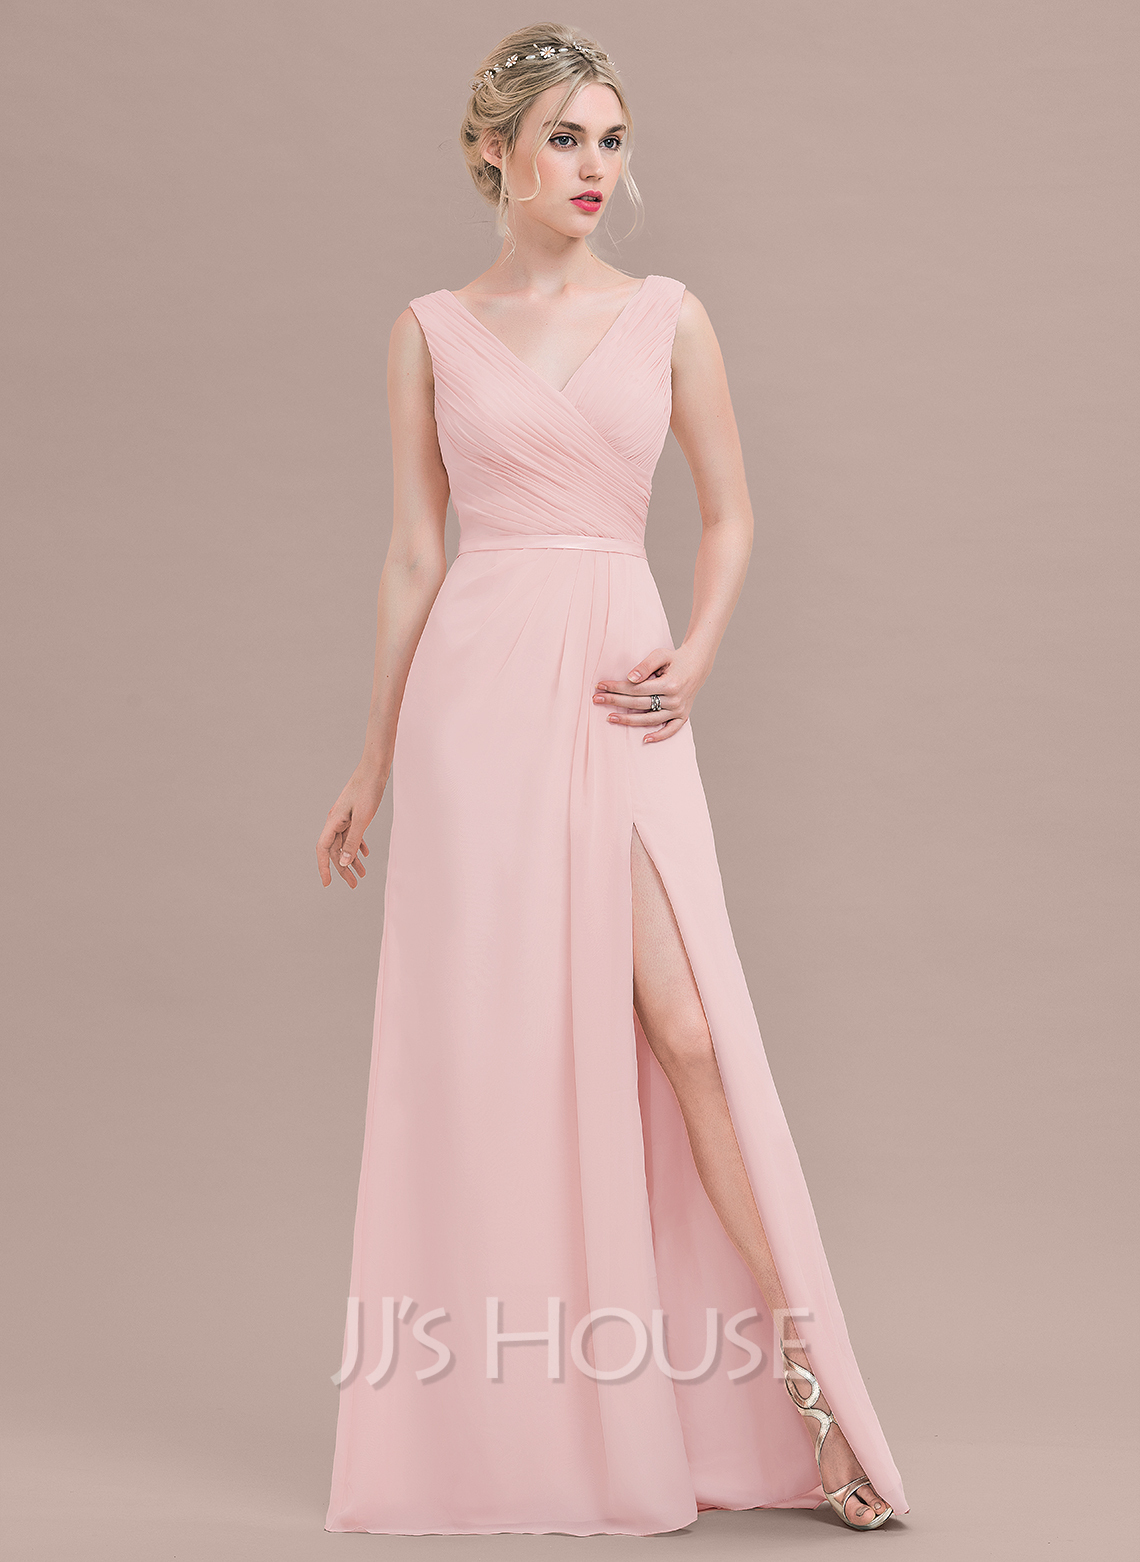 b755e72a52a A-Line Princess V-neck Floor-Length Chiffon Bridesmaid Dress With Ruffle.  Loading zoom